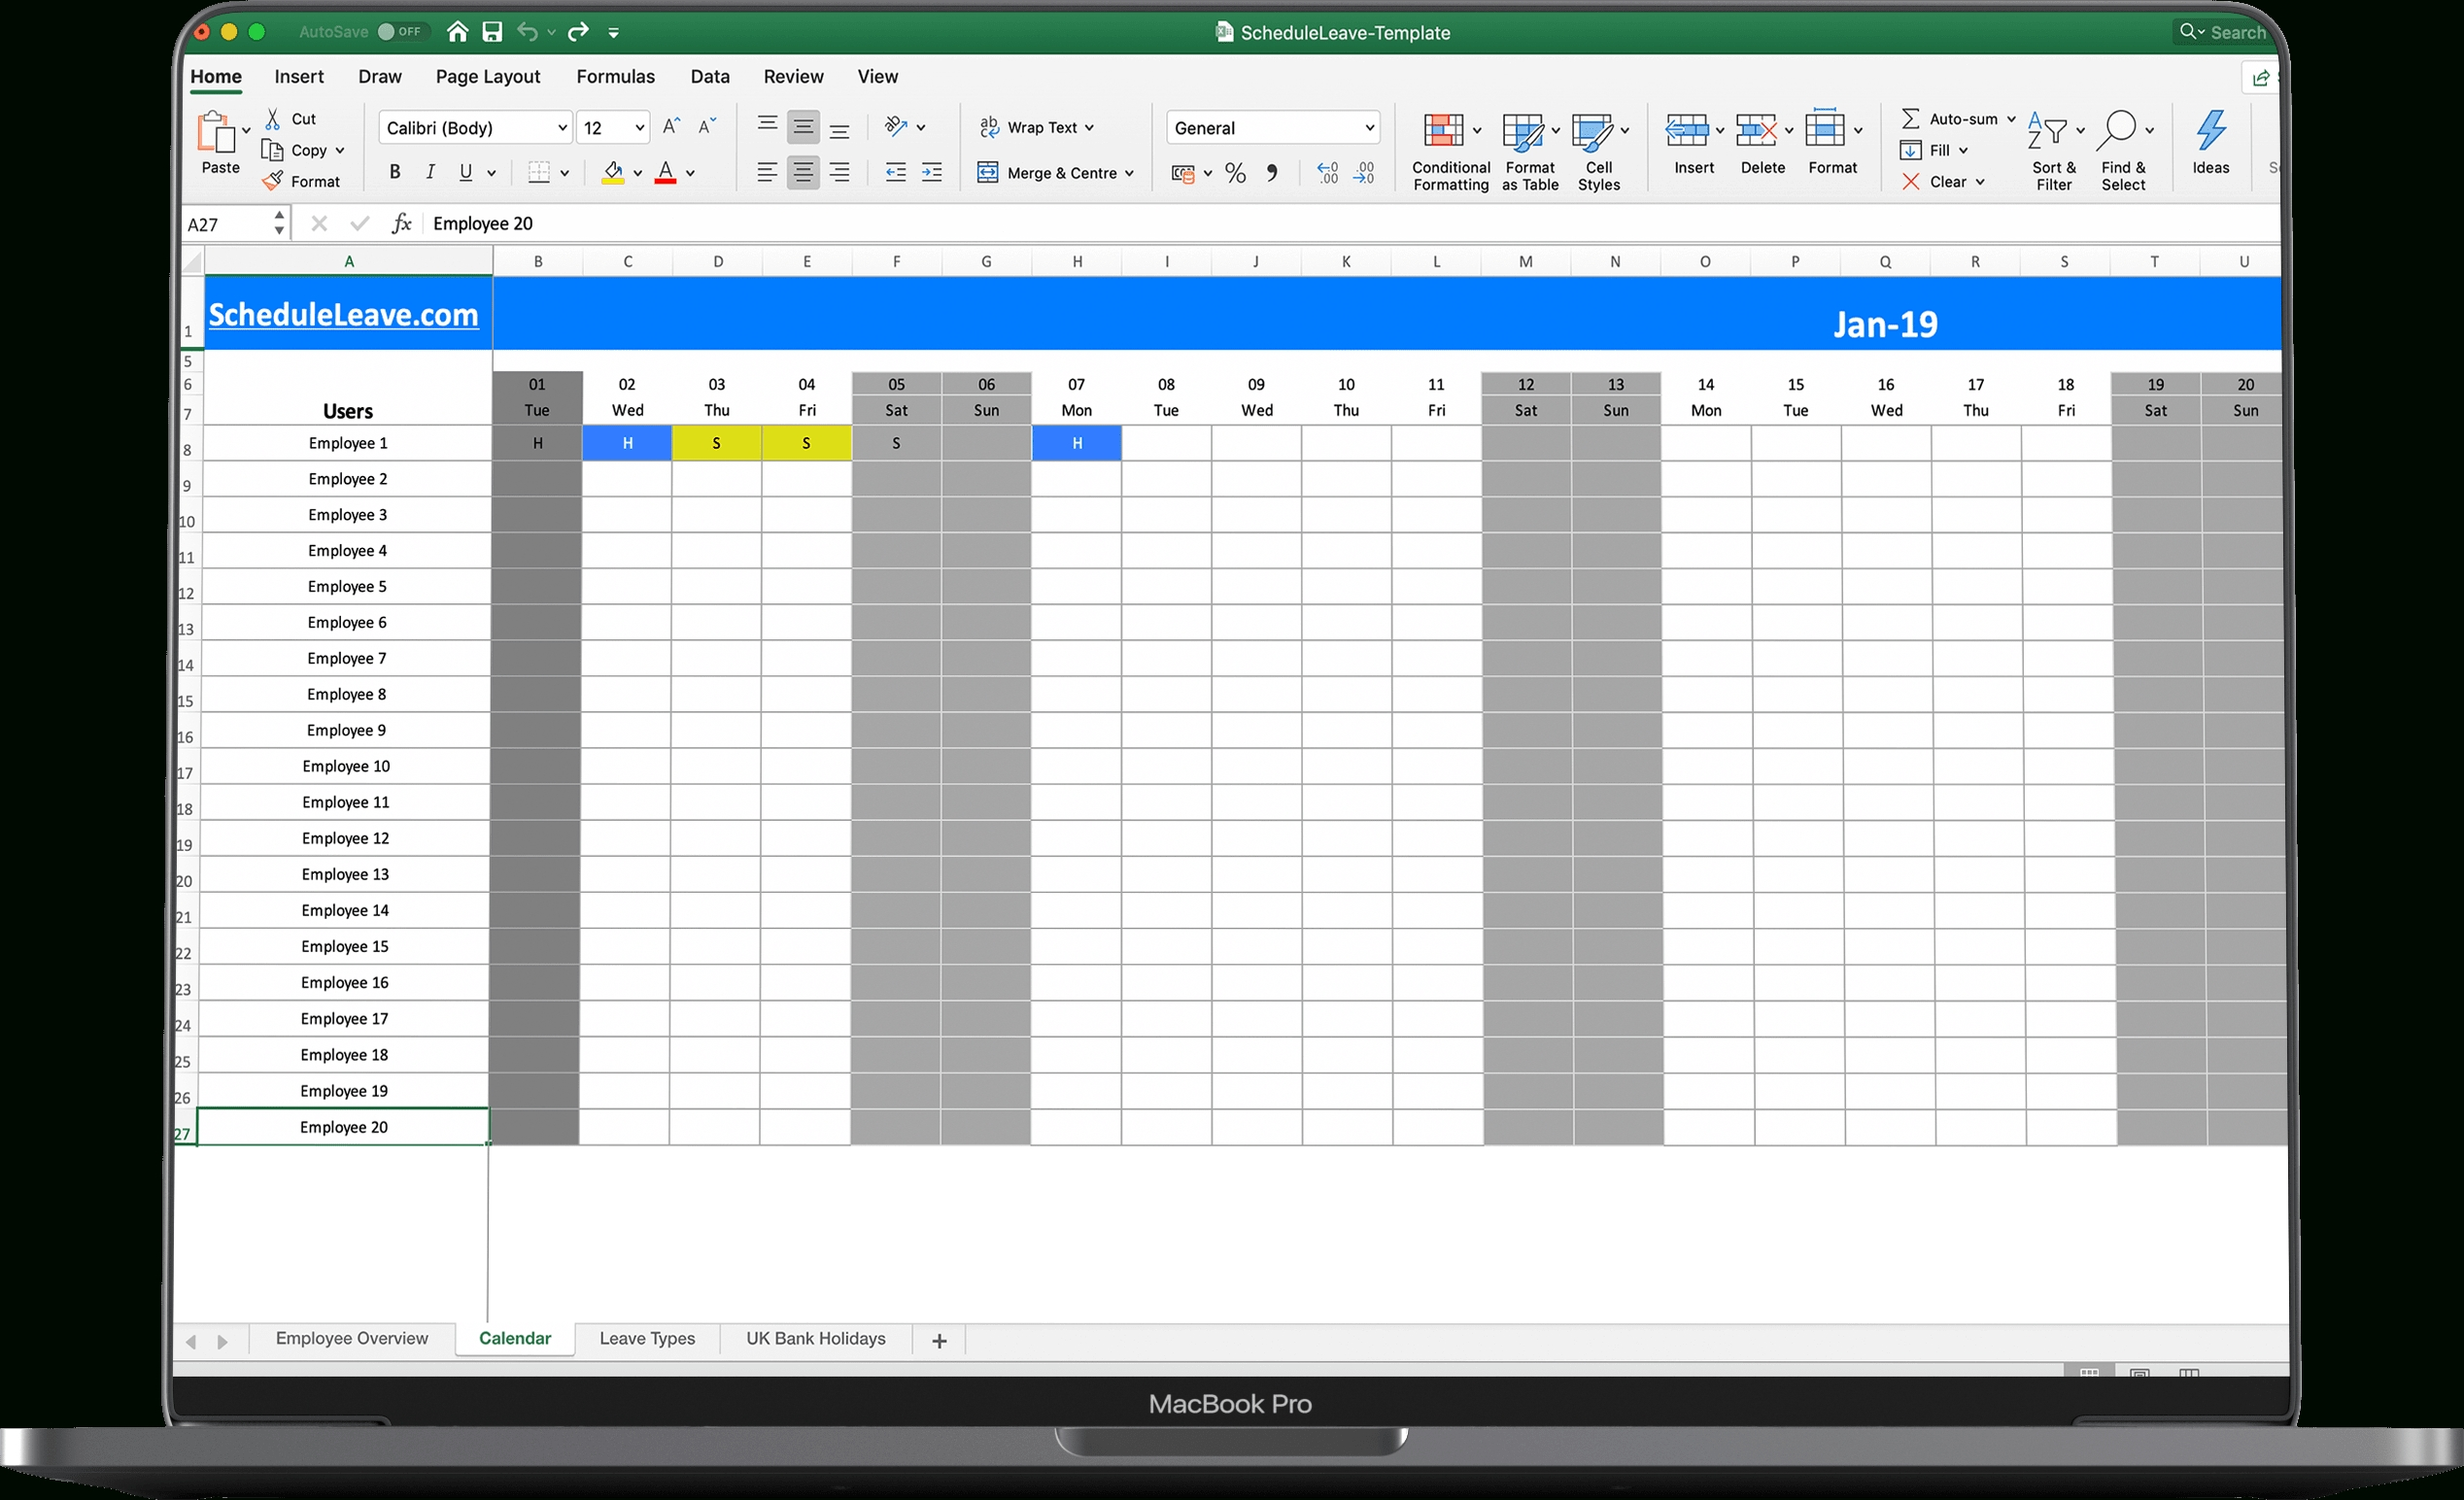 Free Leave & Holiday Tracker Spreadsheet 2020 - Scheduleleave